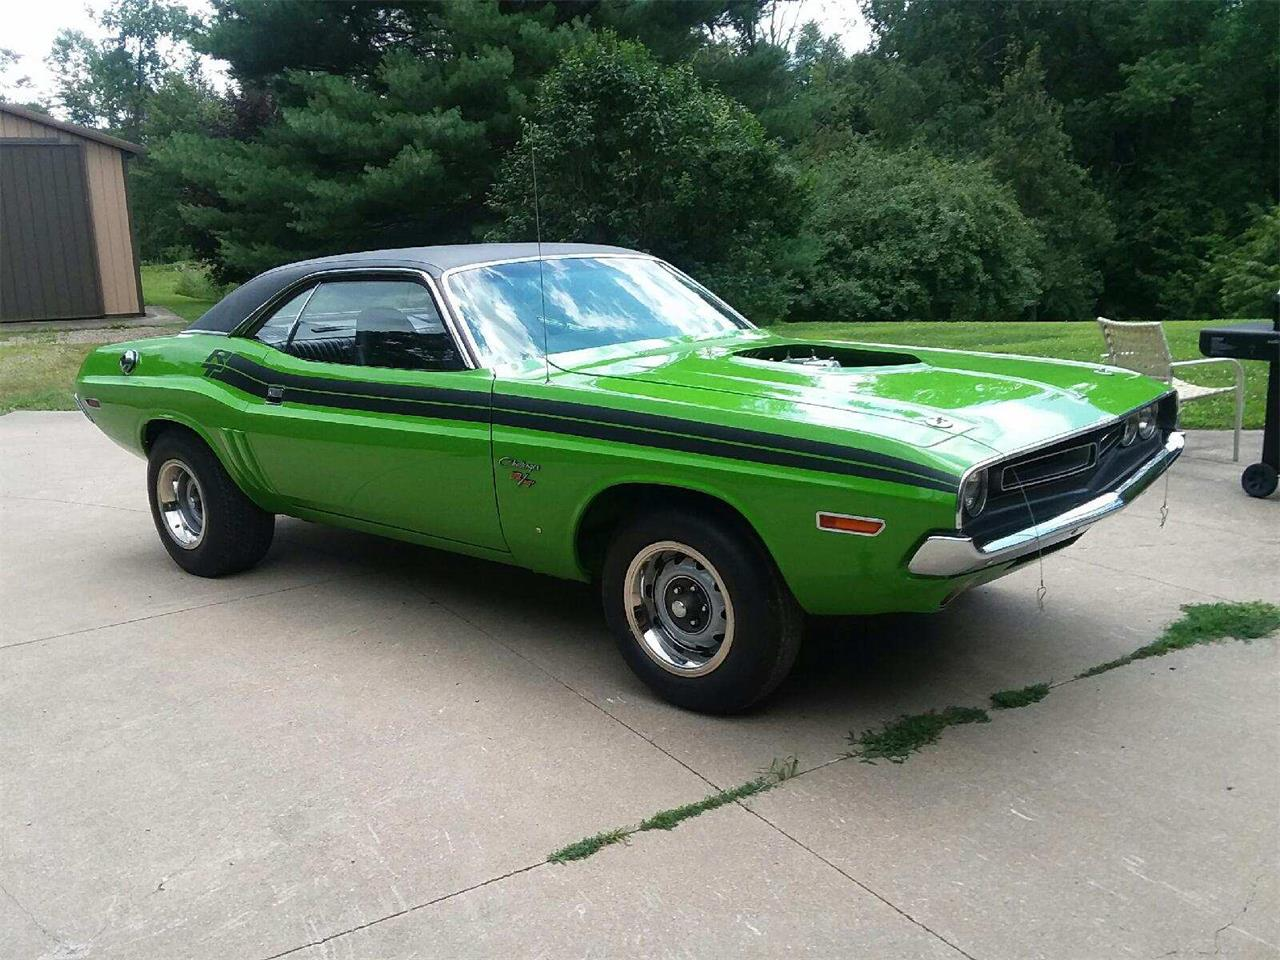 1971 Dodge Challenger R/T for sale in Waterford, PA